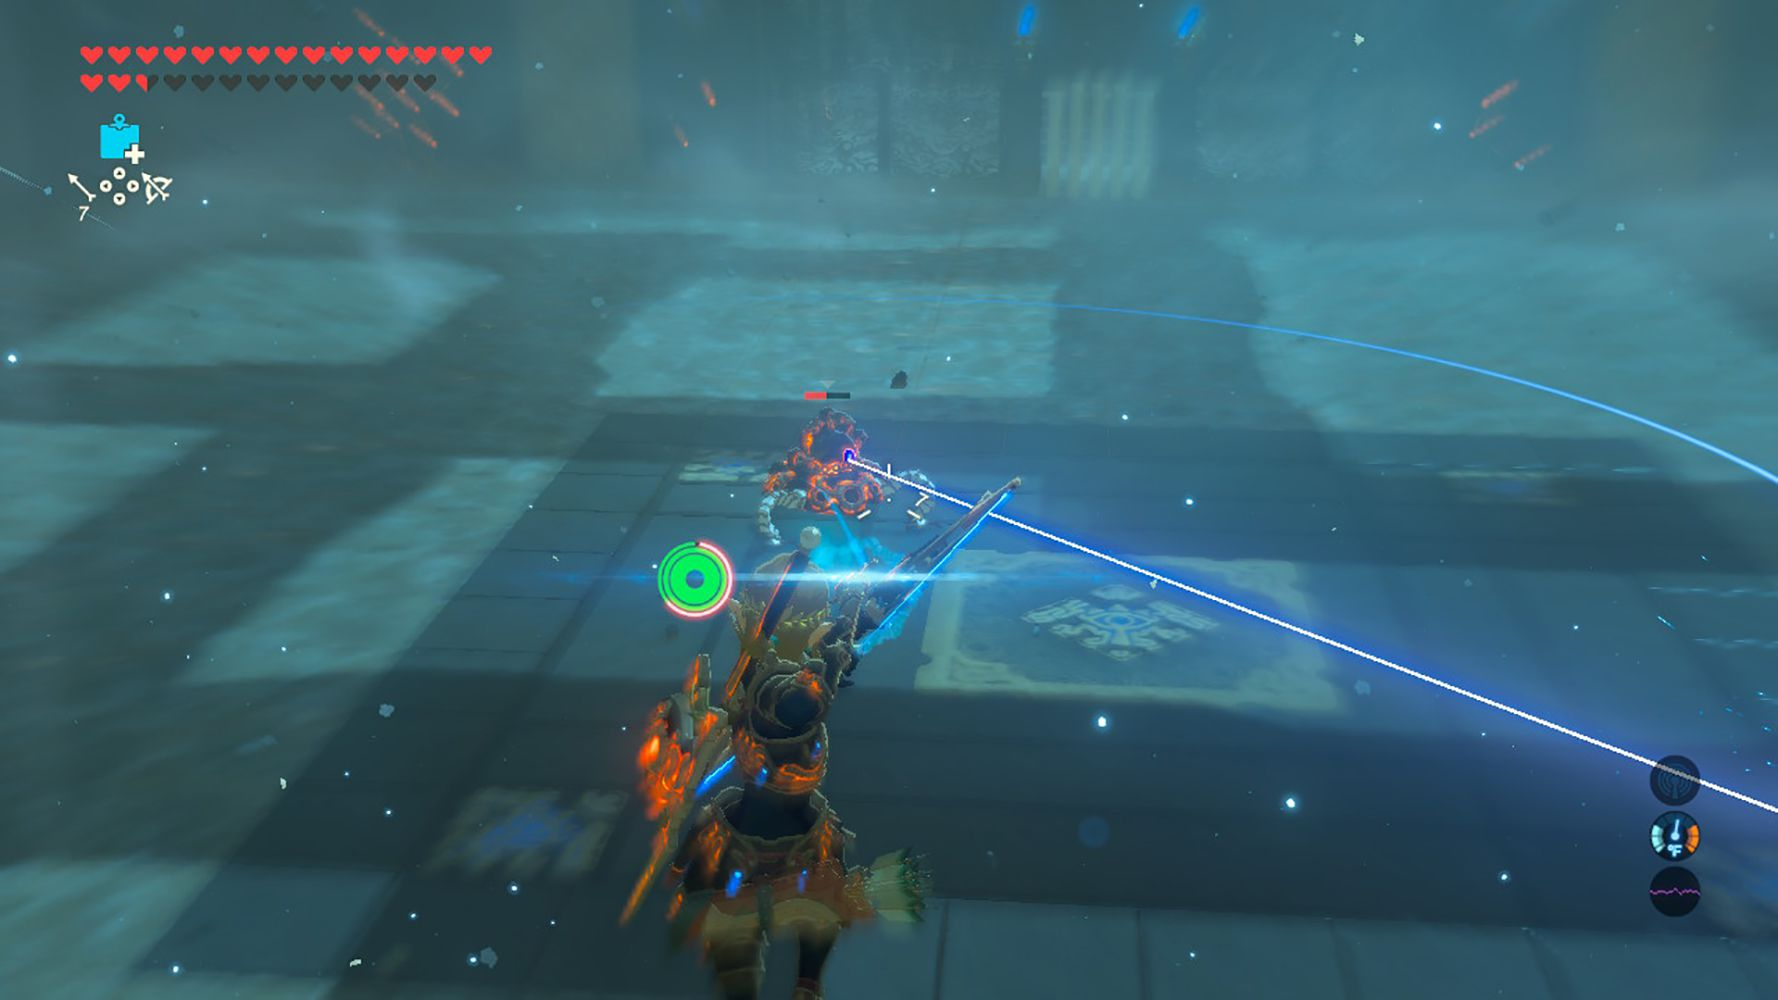 Screenshot of shooting a Guardian with an arrow in Breath of the Wild